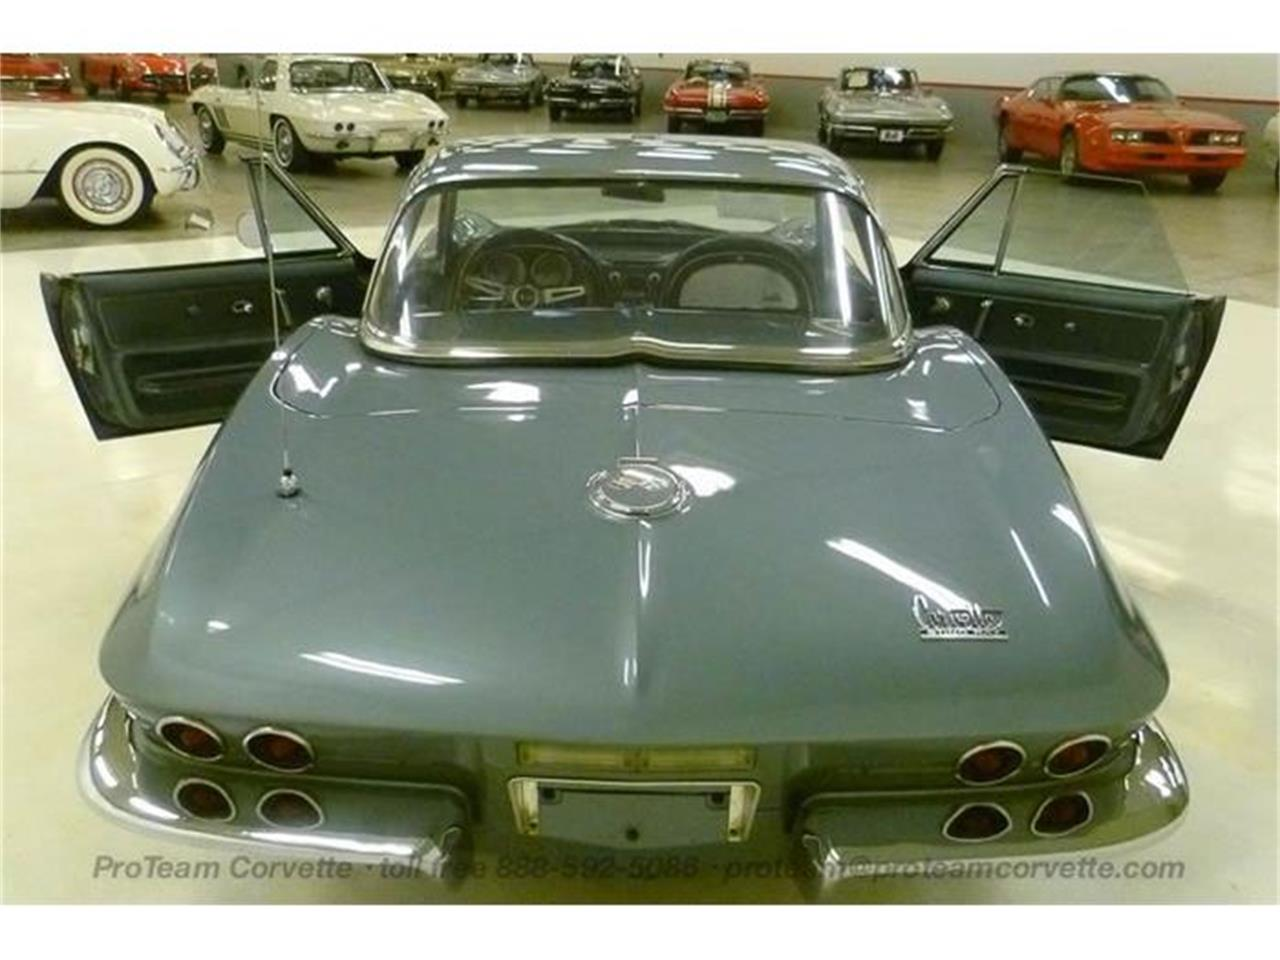 Large Picture of Classic '67 Chevrolet Corvette located in Ohio - $79,995.00 Offered by Proteam Corvette Sales - I3Y7